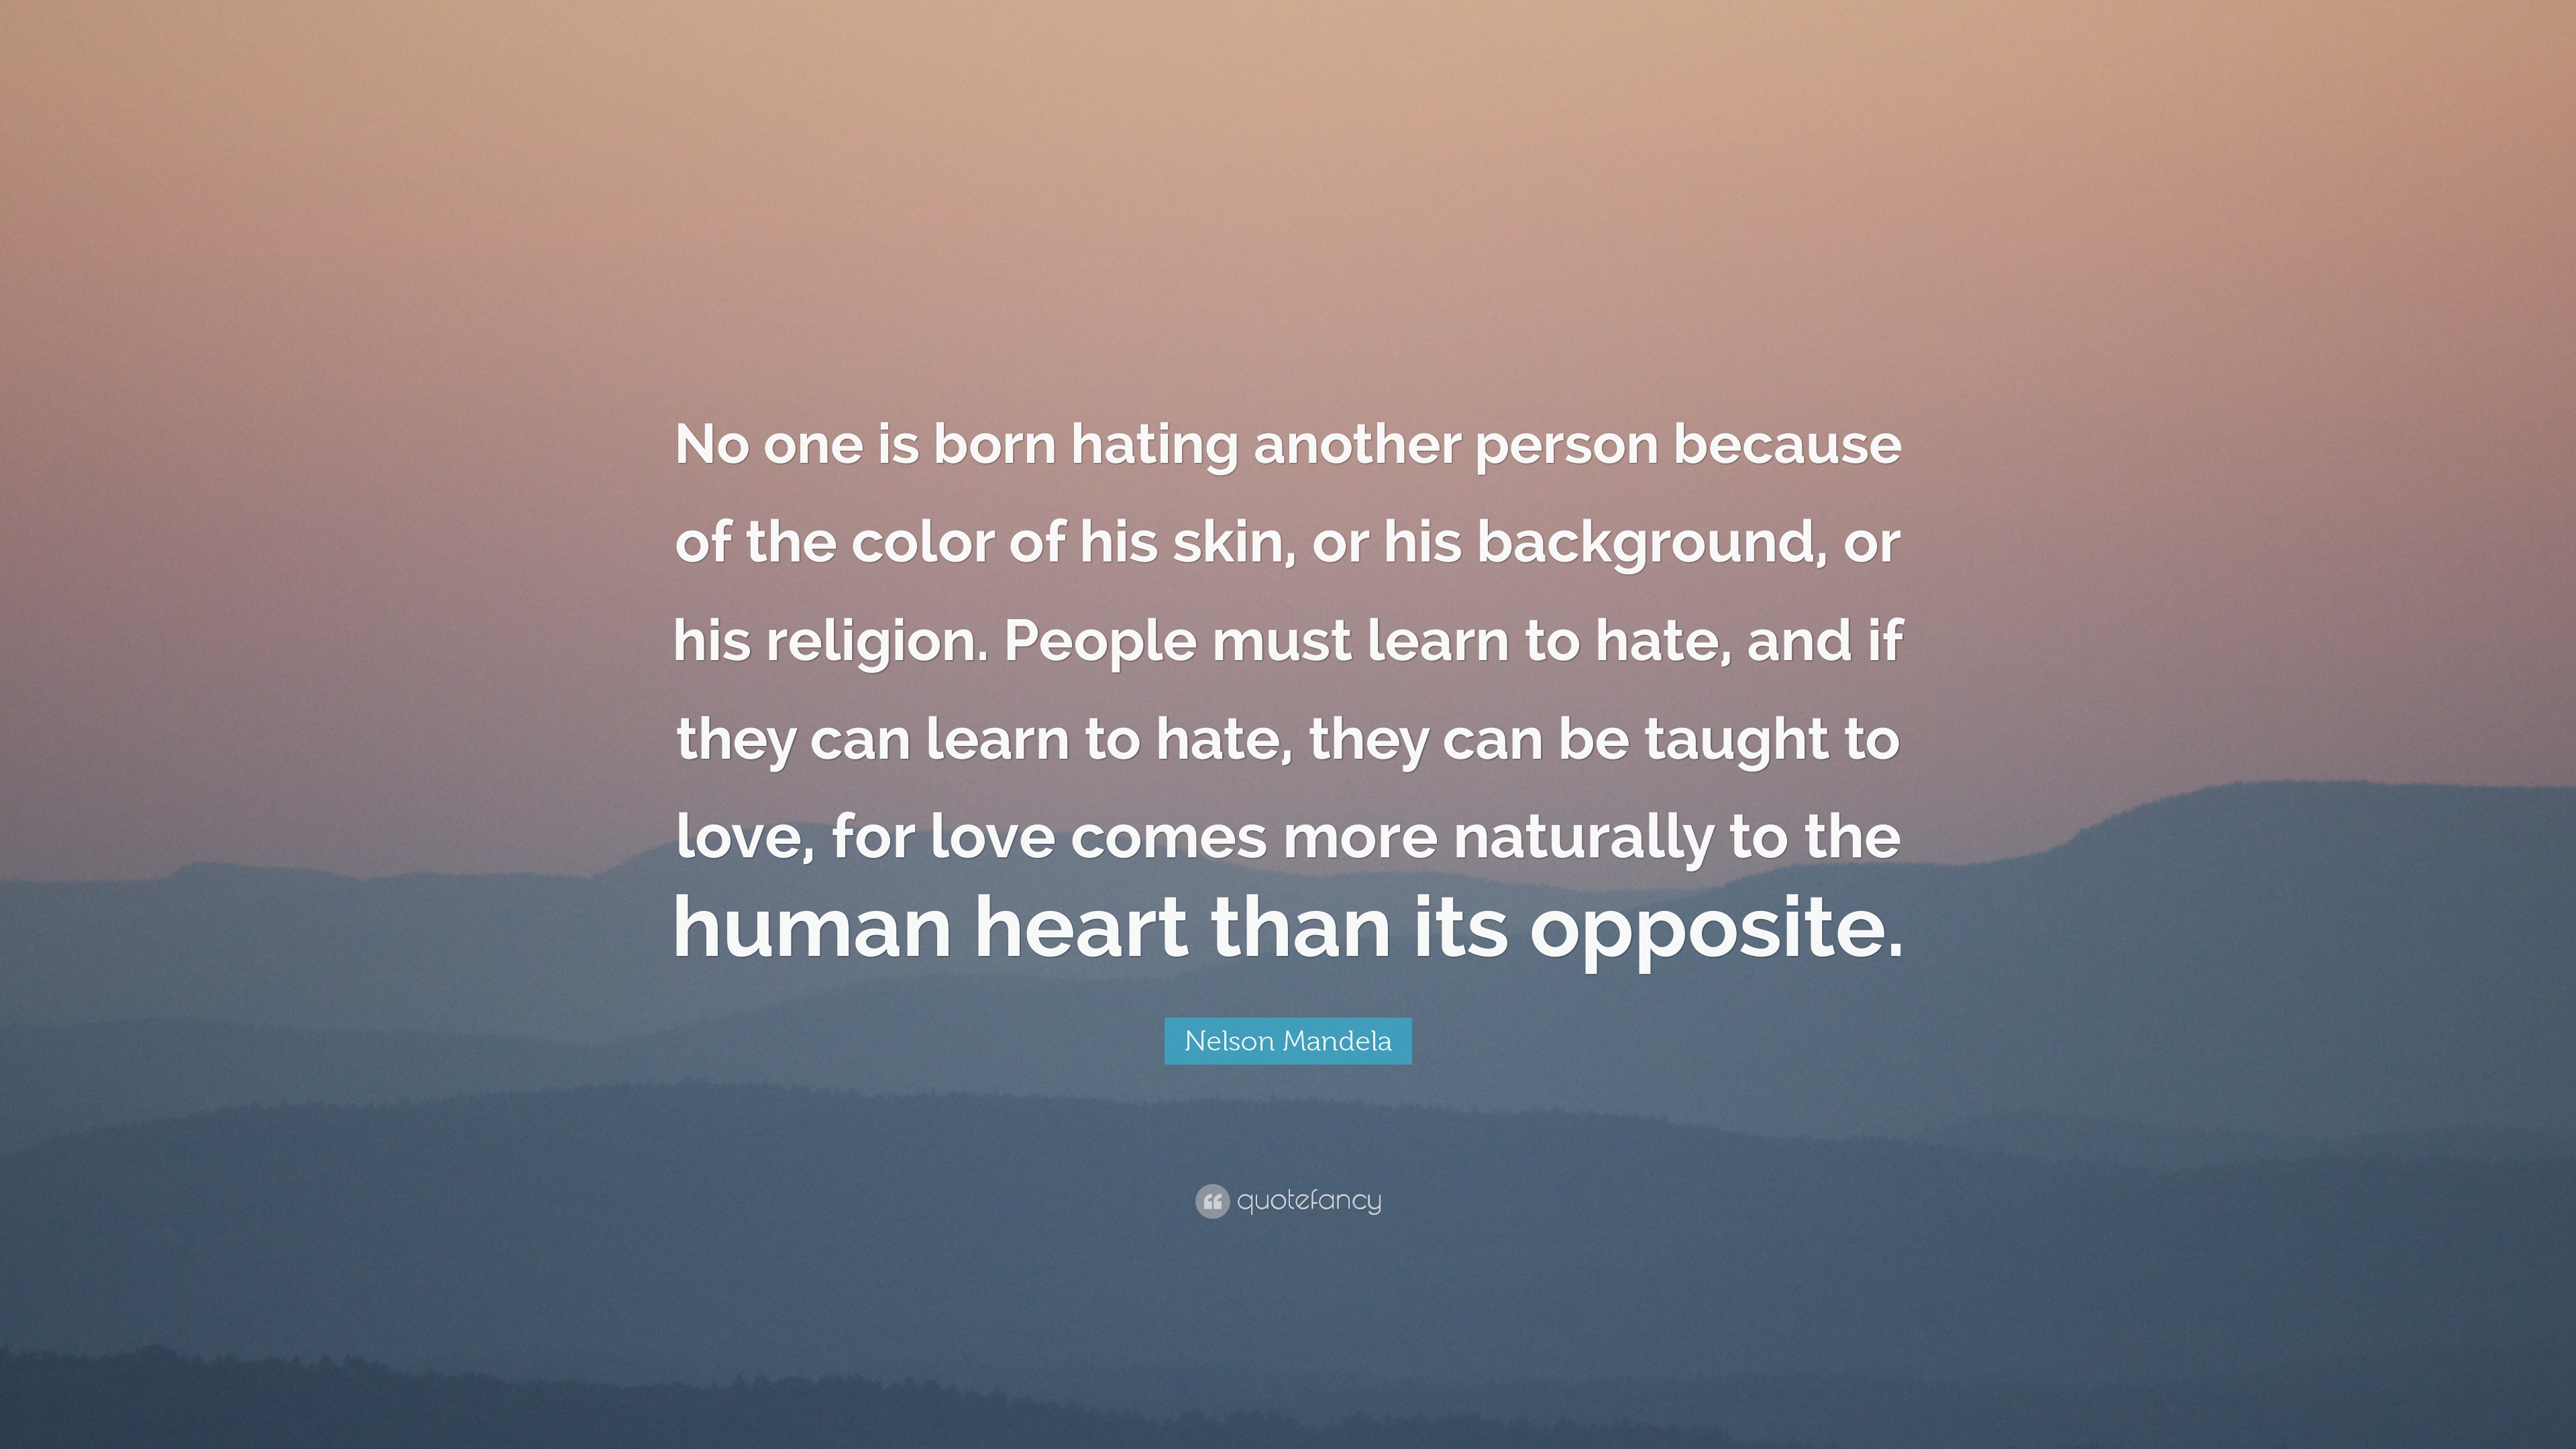 """Mandela Quotes About Love Nelson Mandela Quote """"No One Is Born Hating Another Person"""